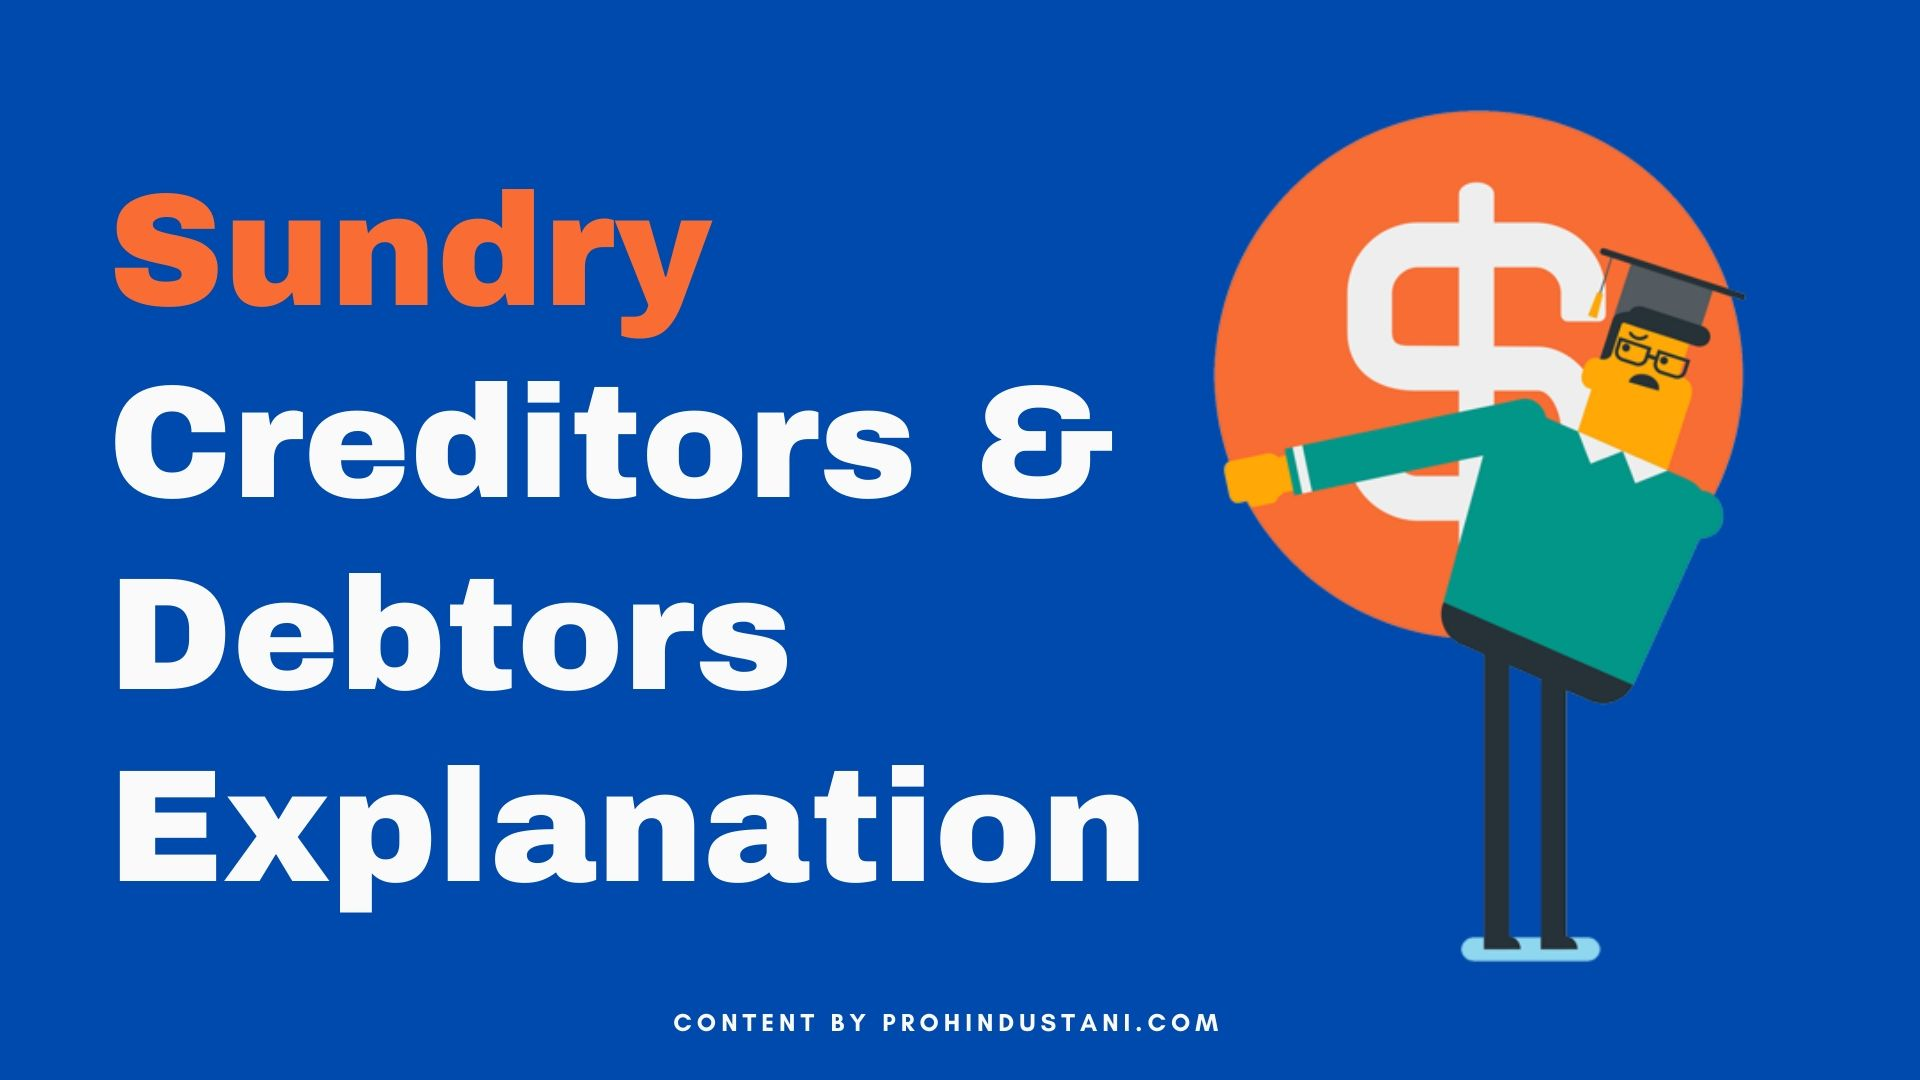 Sundry Creditors & Debtors meaning in hindi